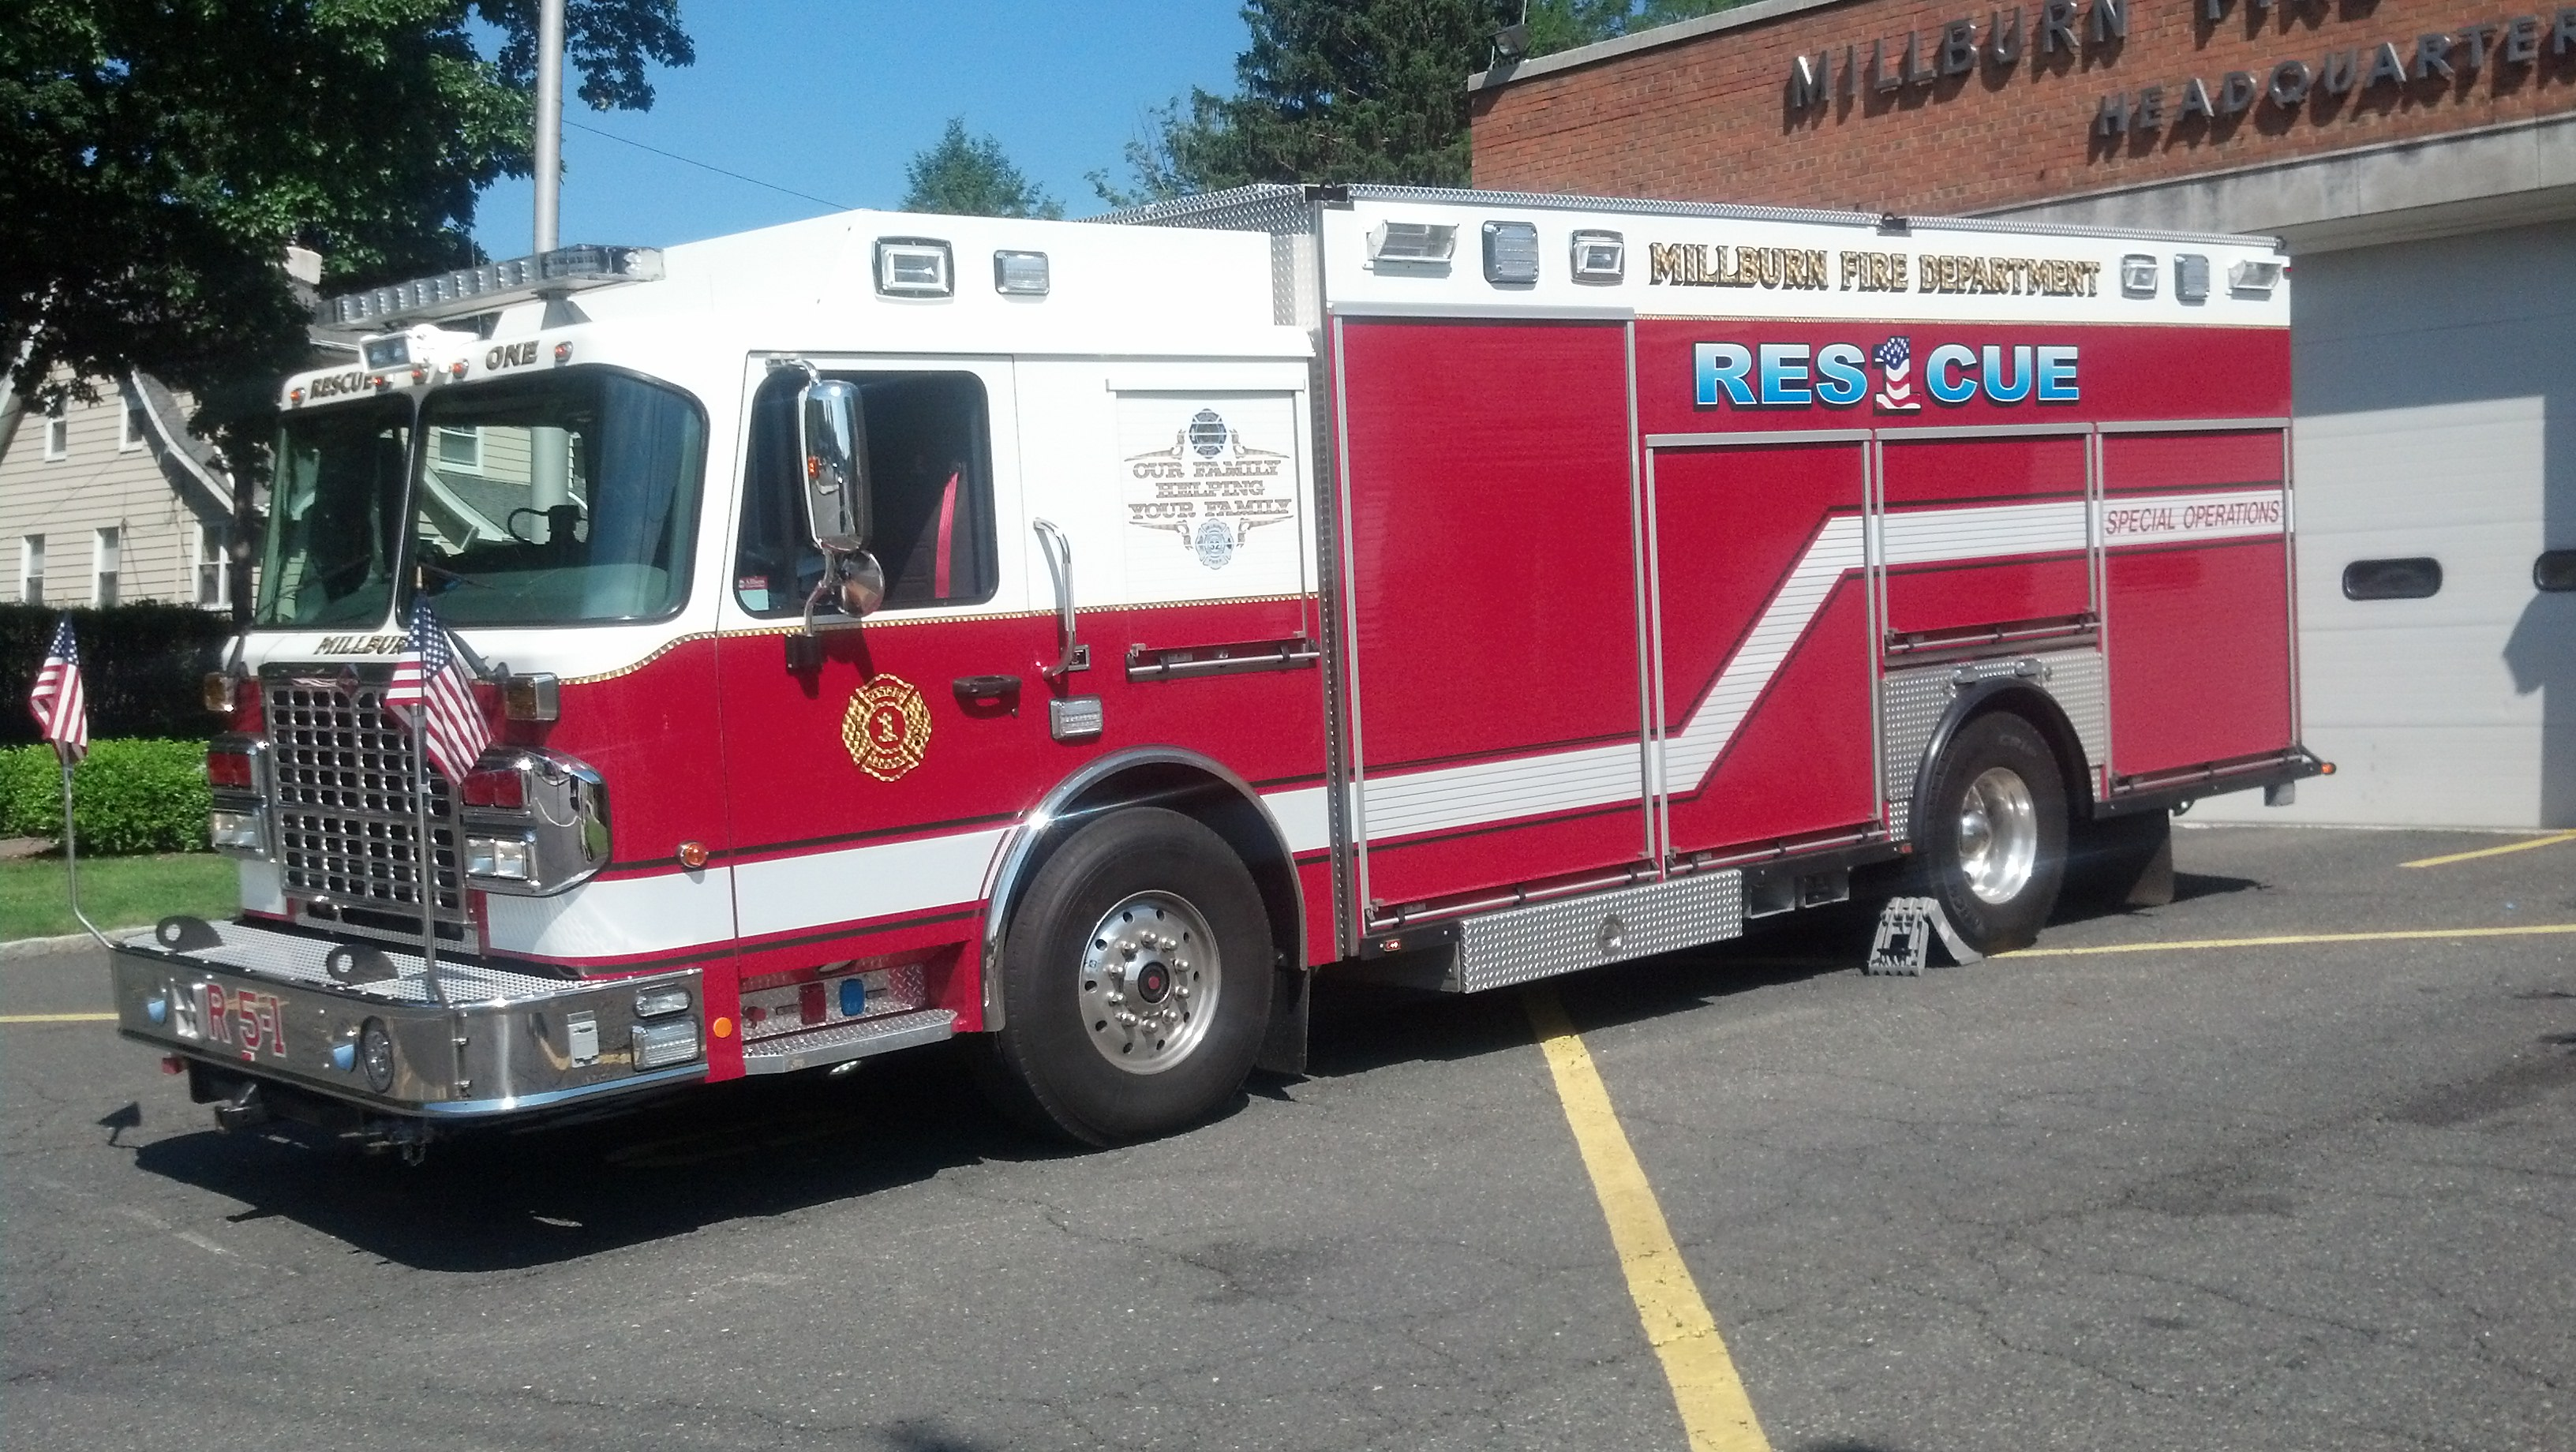 A red and white rescue engine with Rescue 1 on the side